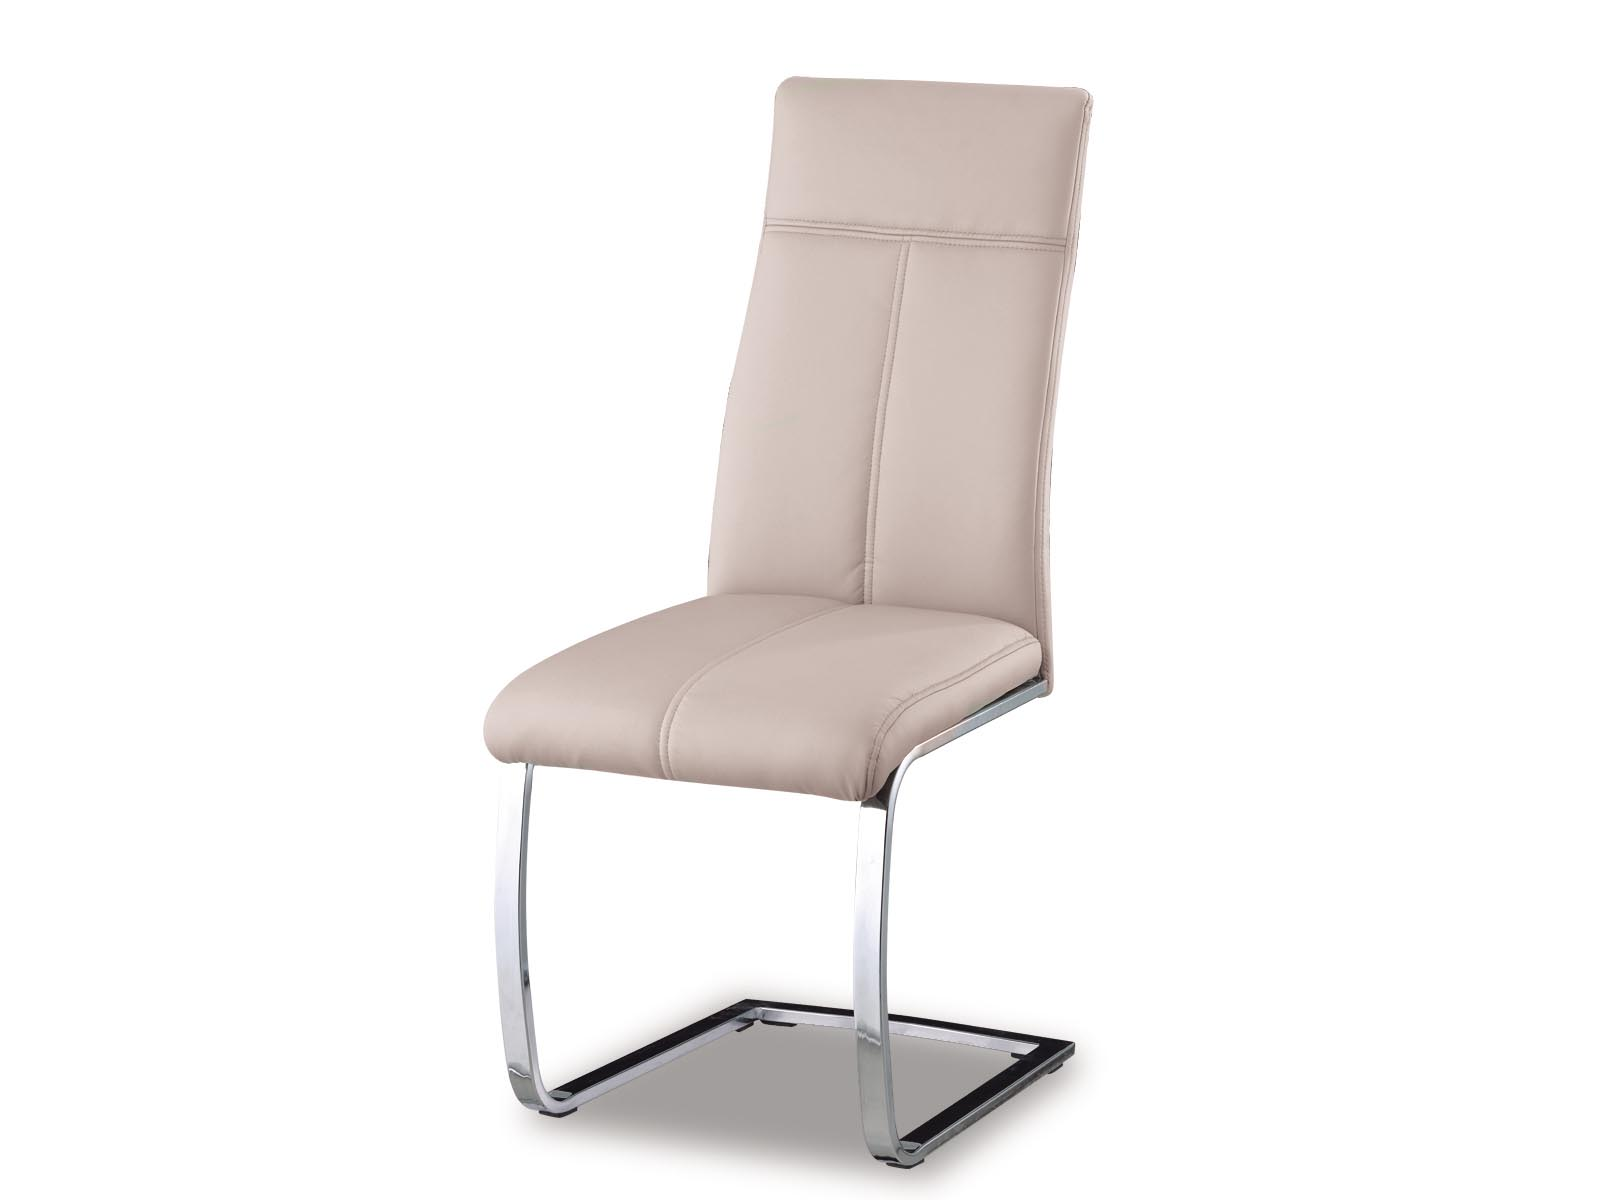 Meubles Belgica Tongres Horaire Chaise Elio Belgica Be